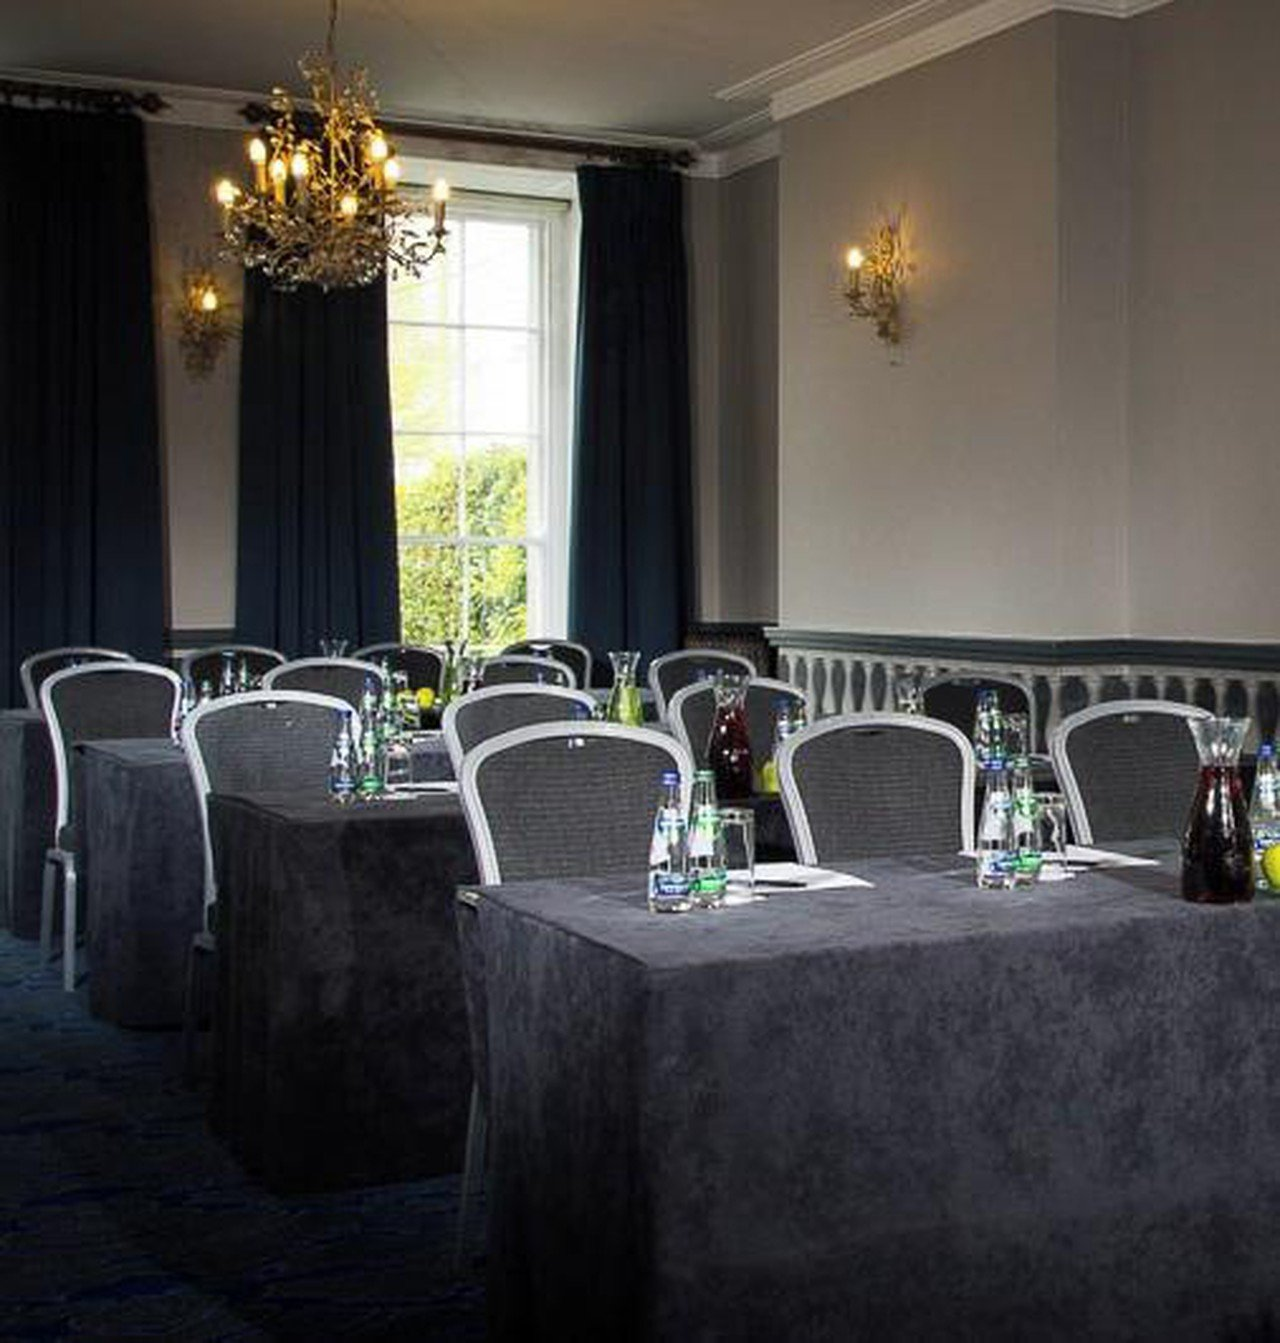 Cork conference rooms Meetingraum Oriel House Hotel - Inniskenny Suite image 0